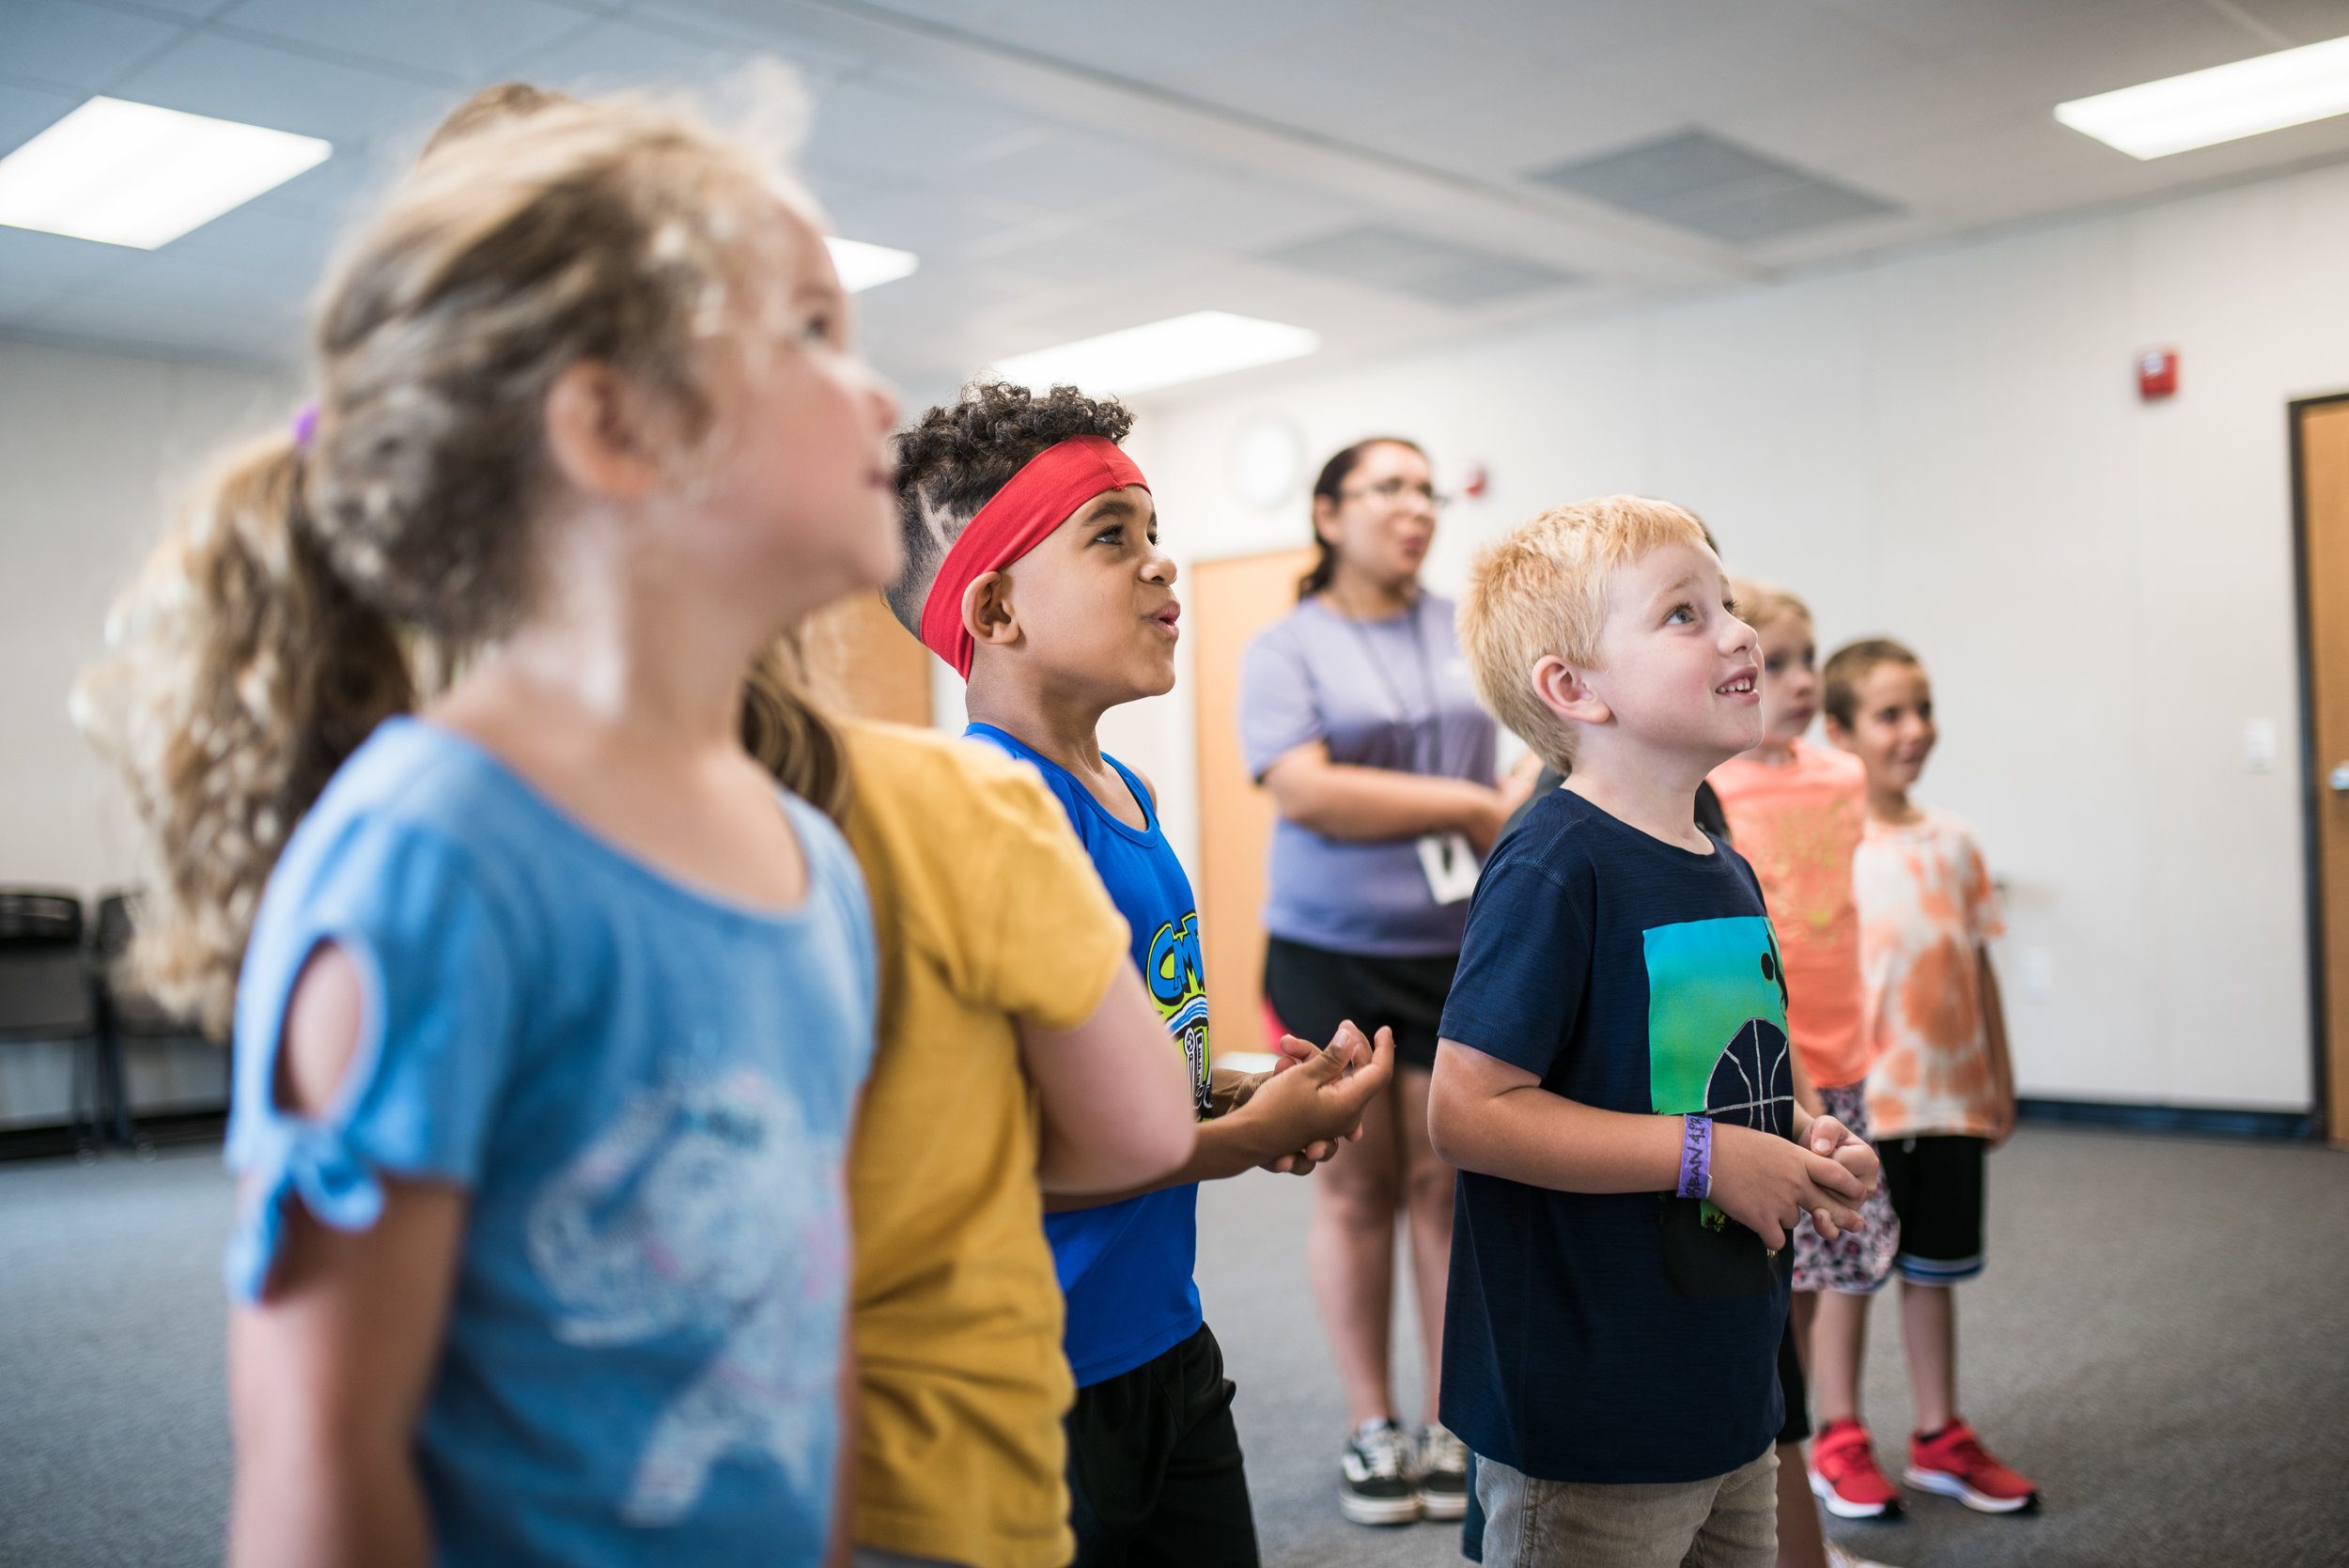 Campers had fun trying to figure out their vocal range by singing pitches up a musical scale in the Funk Choir session. Trying new things can be uncomfortable at times, but all campers supported and encouraged each other through the entire learning process.